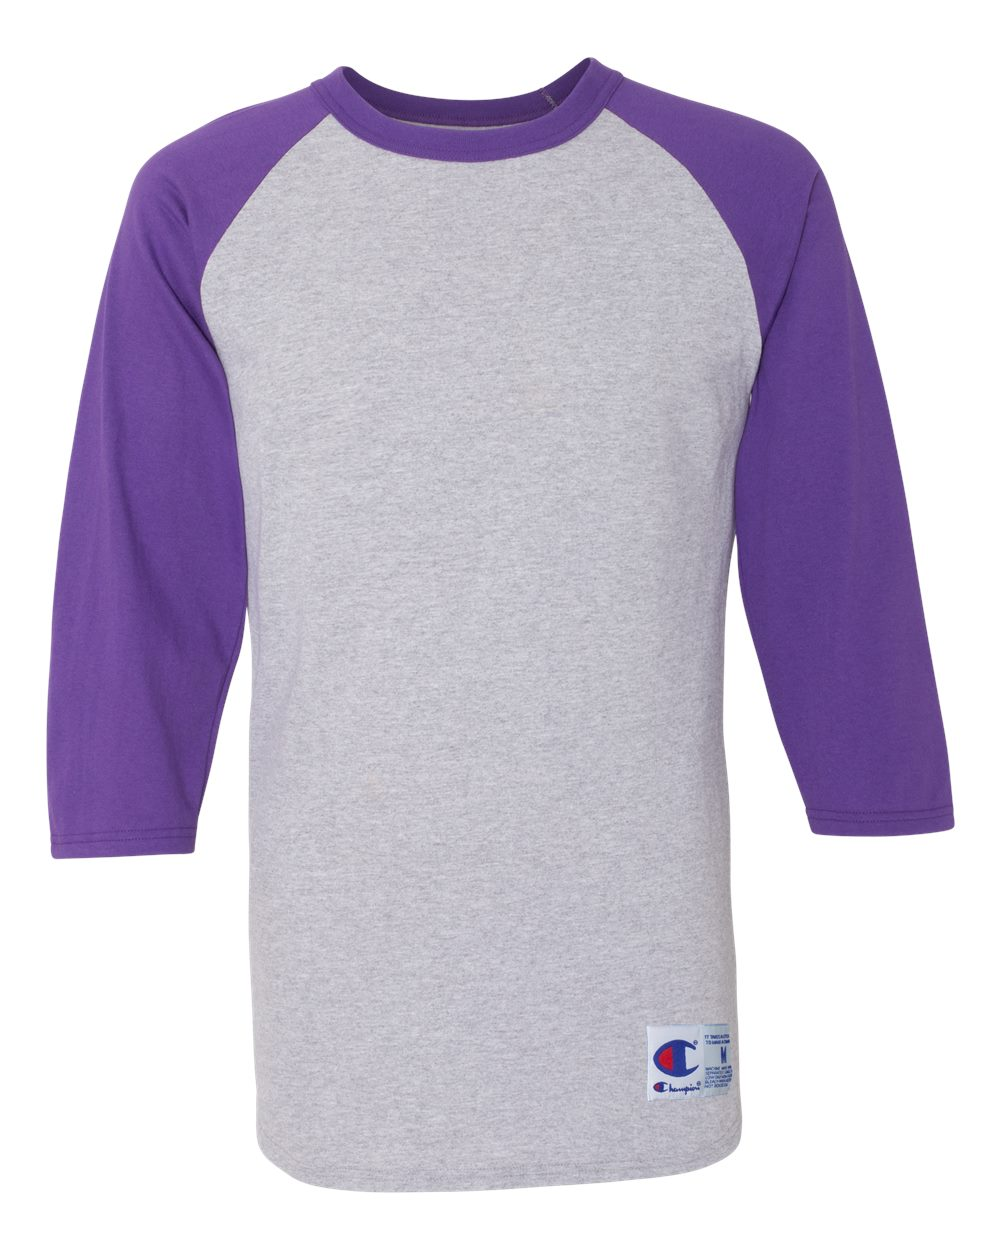 click to view Oxford Grey/ Purple